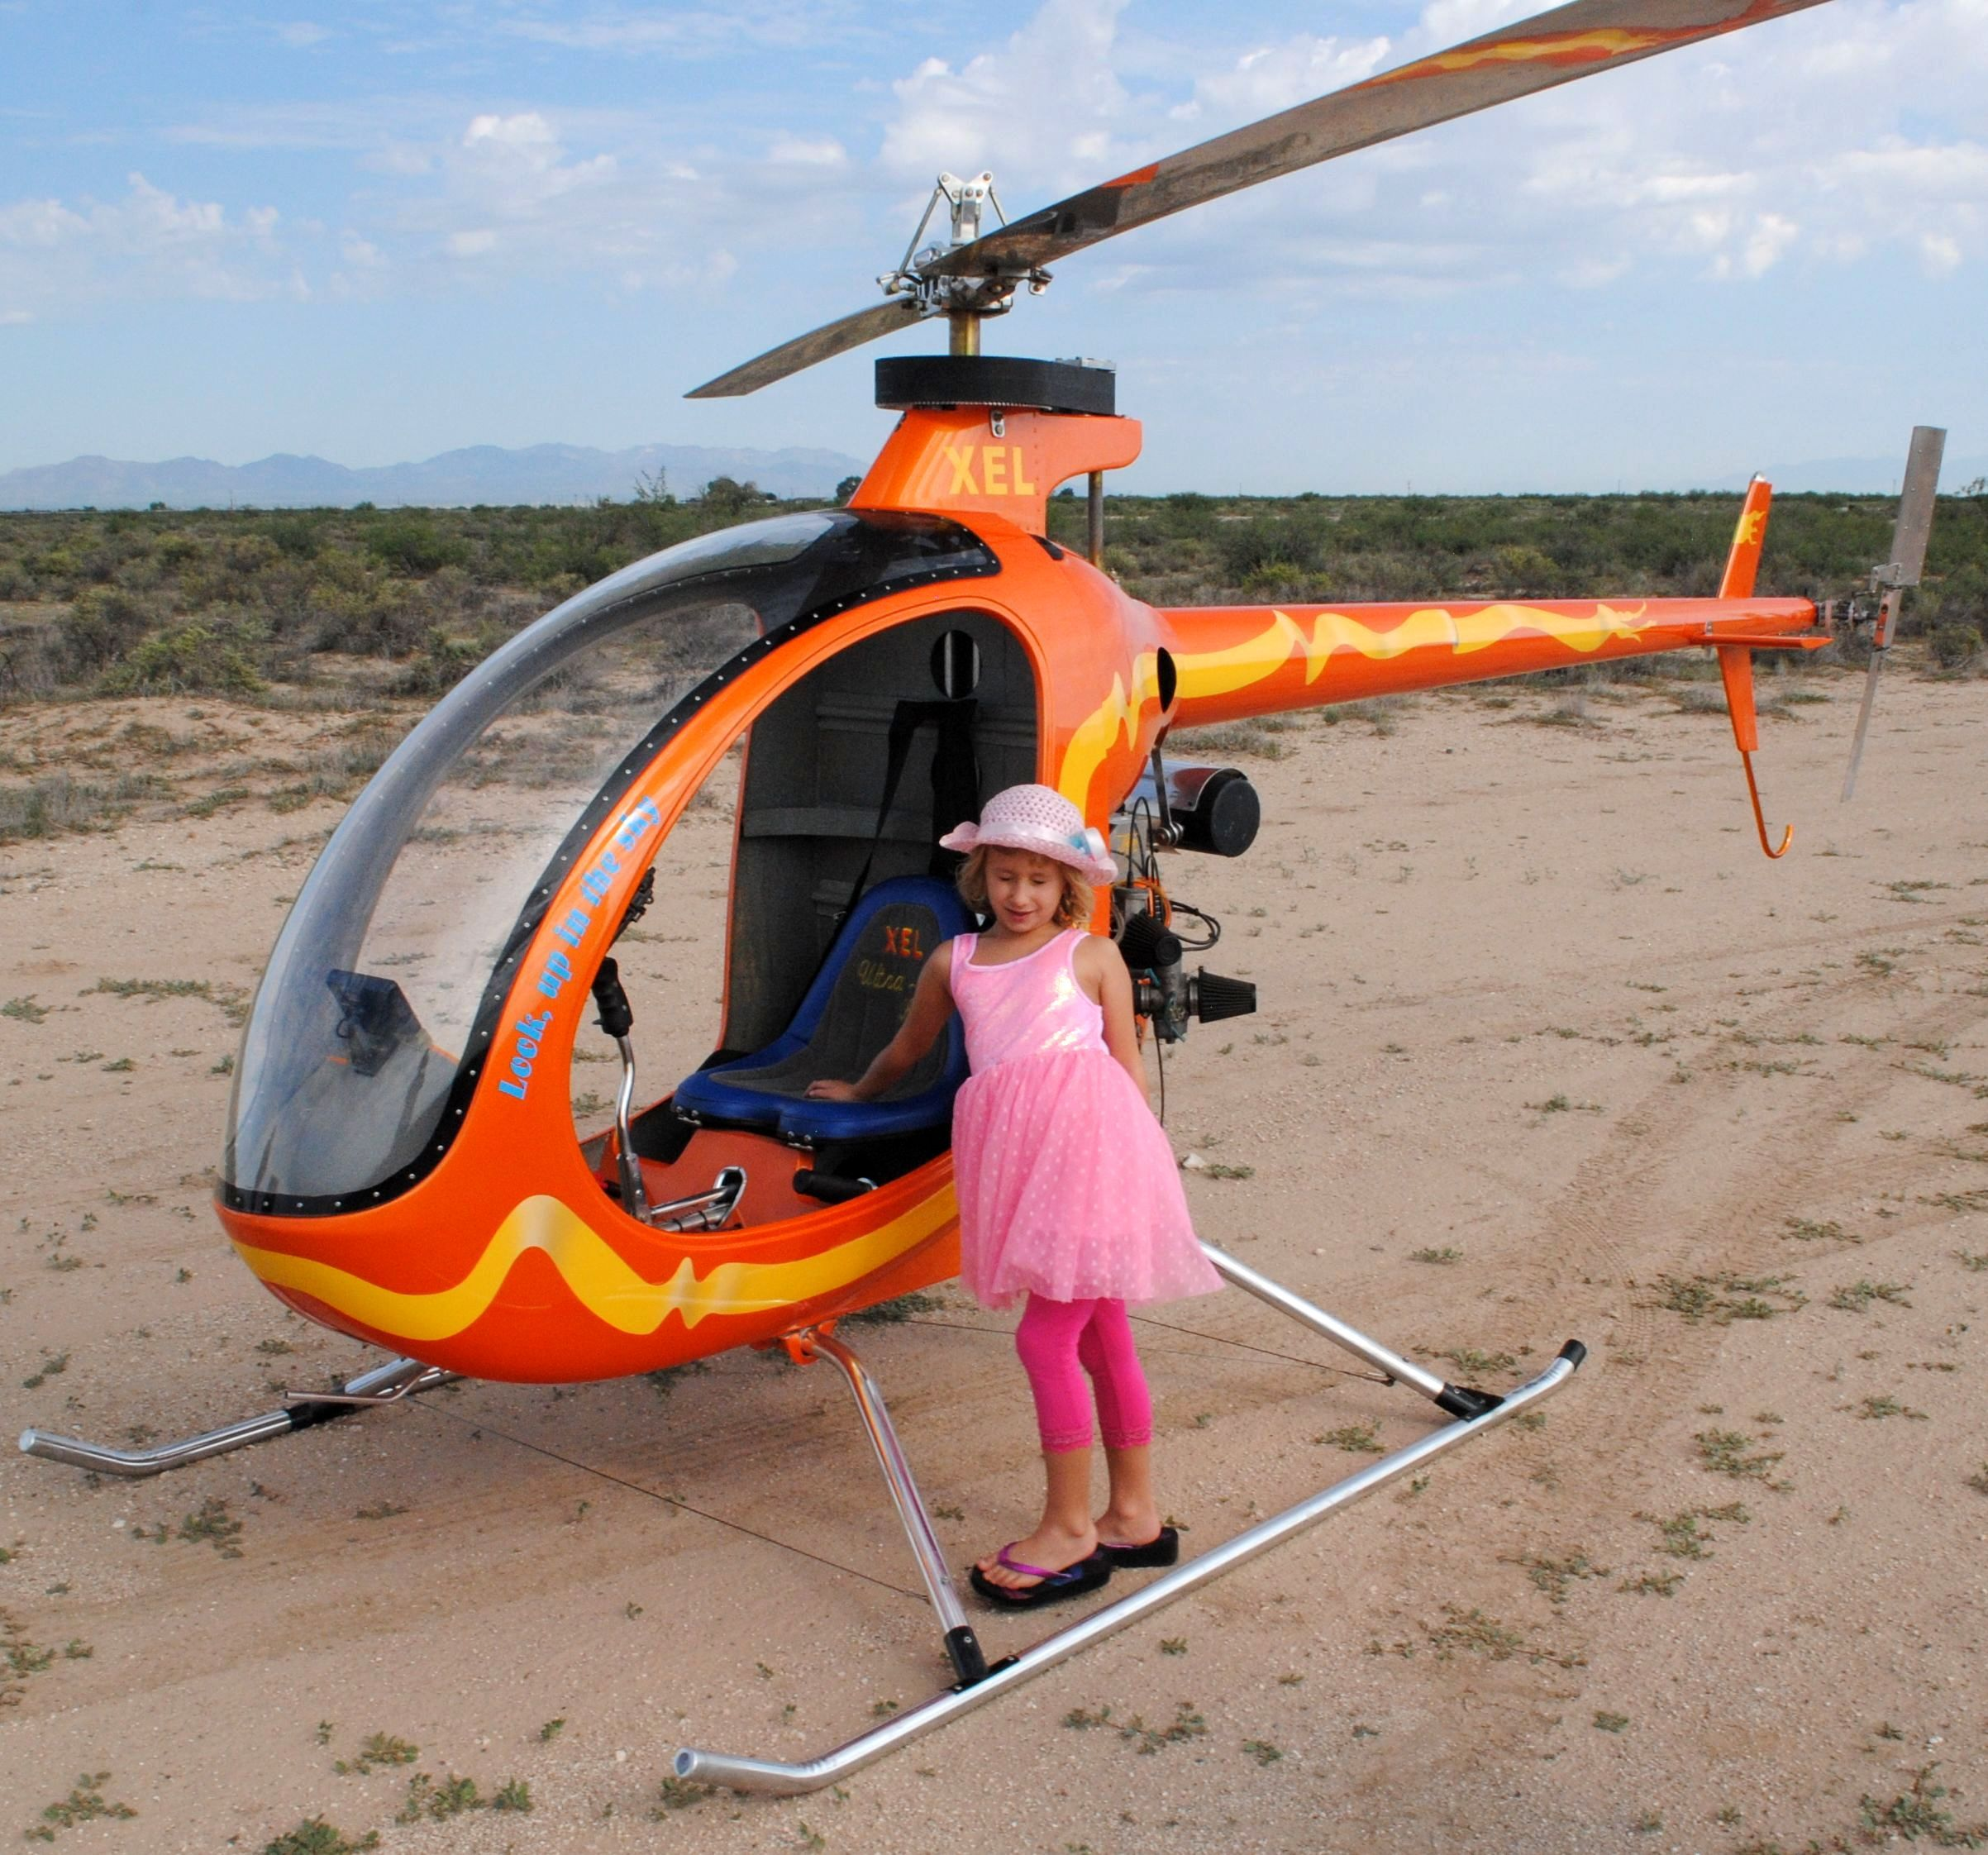 ultralight helicopter sale with 411727590904670265 on Homemade Helicopter Plans besides 03700 as well Summit Ii Powered Parachute additionally Watch furthermore Skyfox.